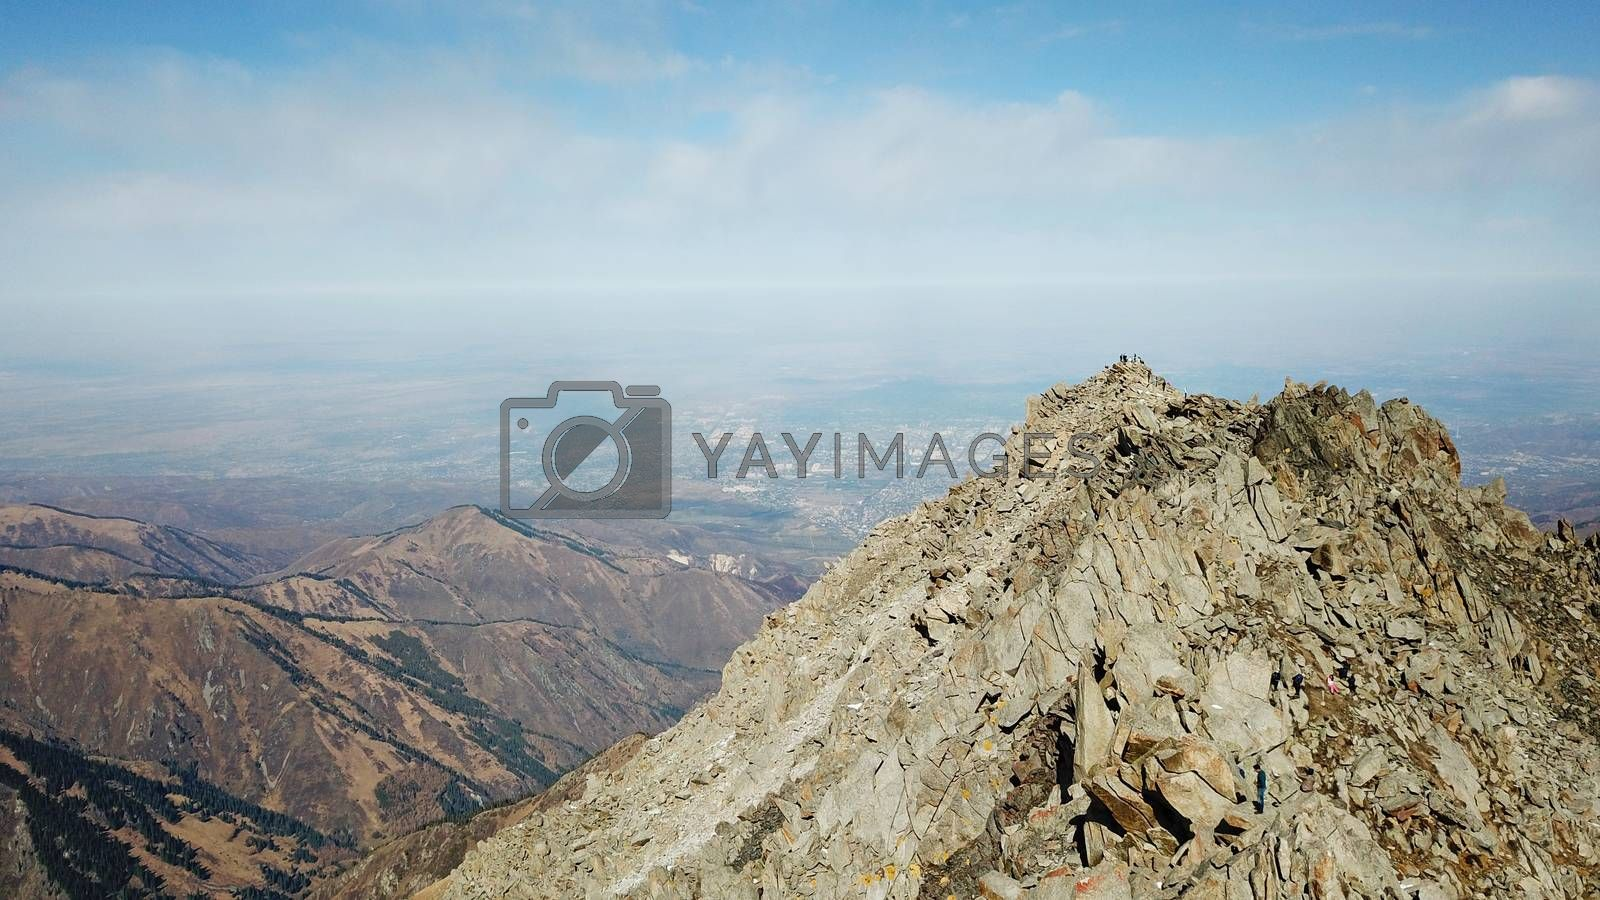 Top view of a group of tourists on top of a snowy peak. Huge rocks covered with snow. Climbers take photos from the top, pose. Flying above the mountains. Blue sky and steep slopes. Kazakhstan.